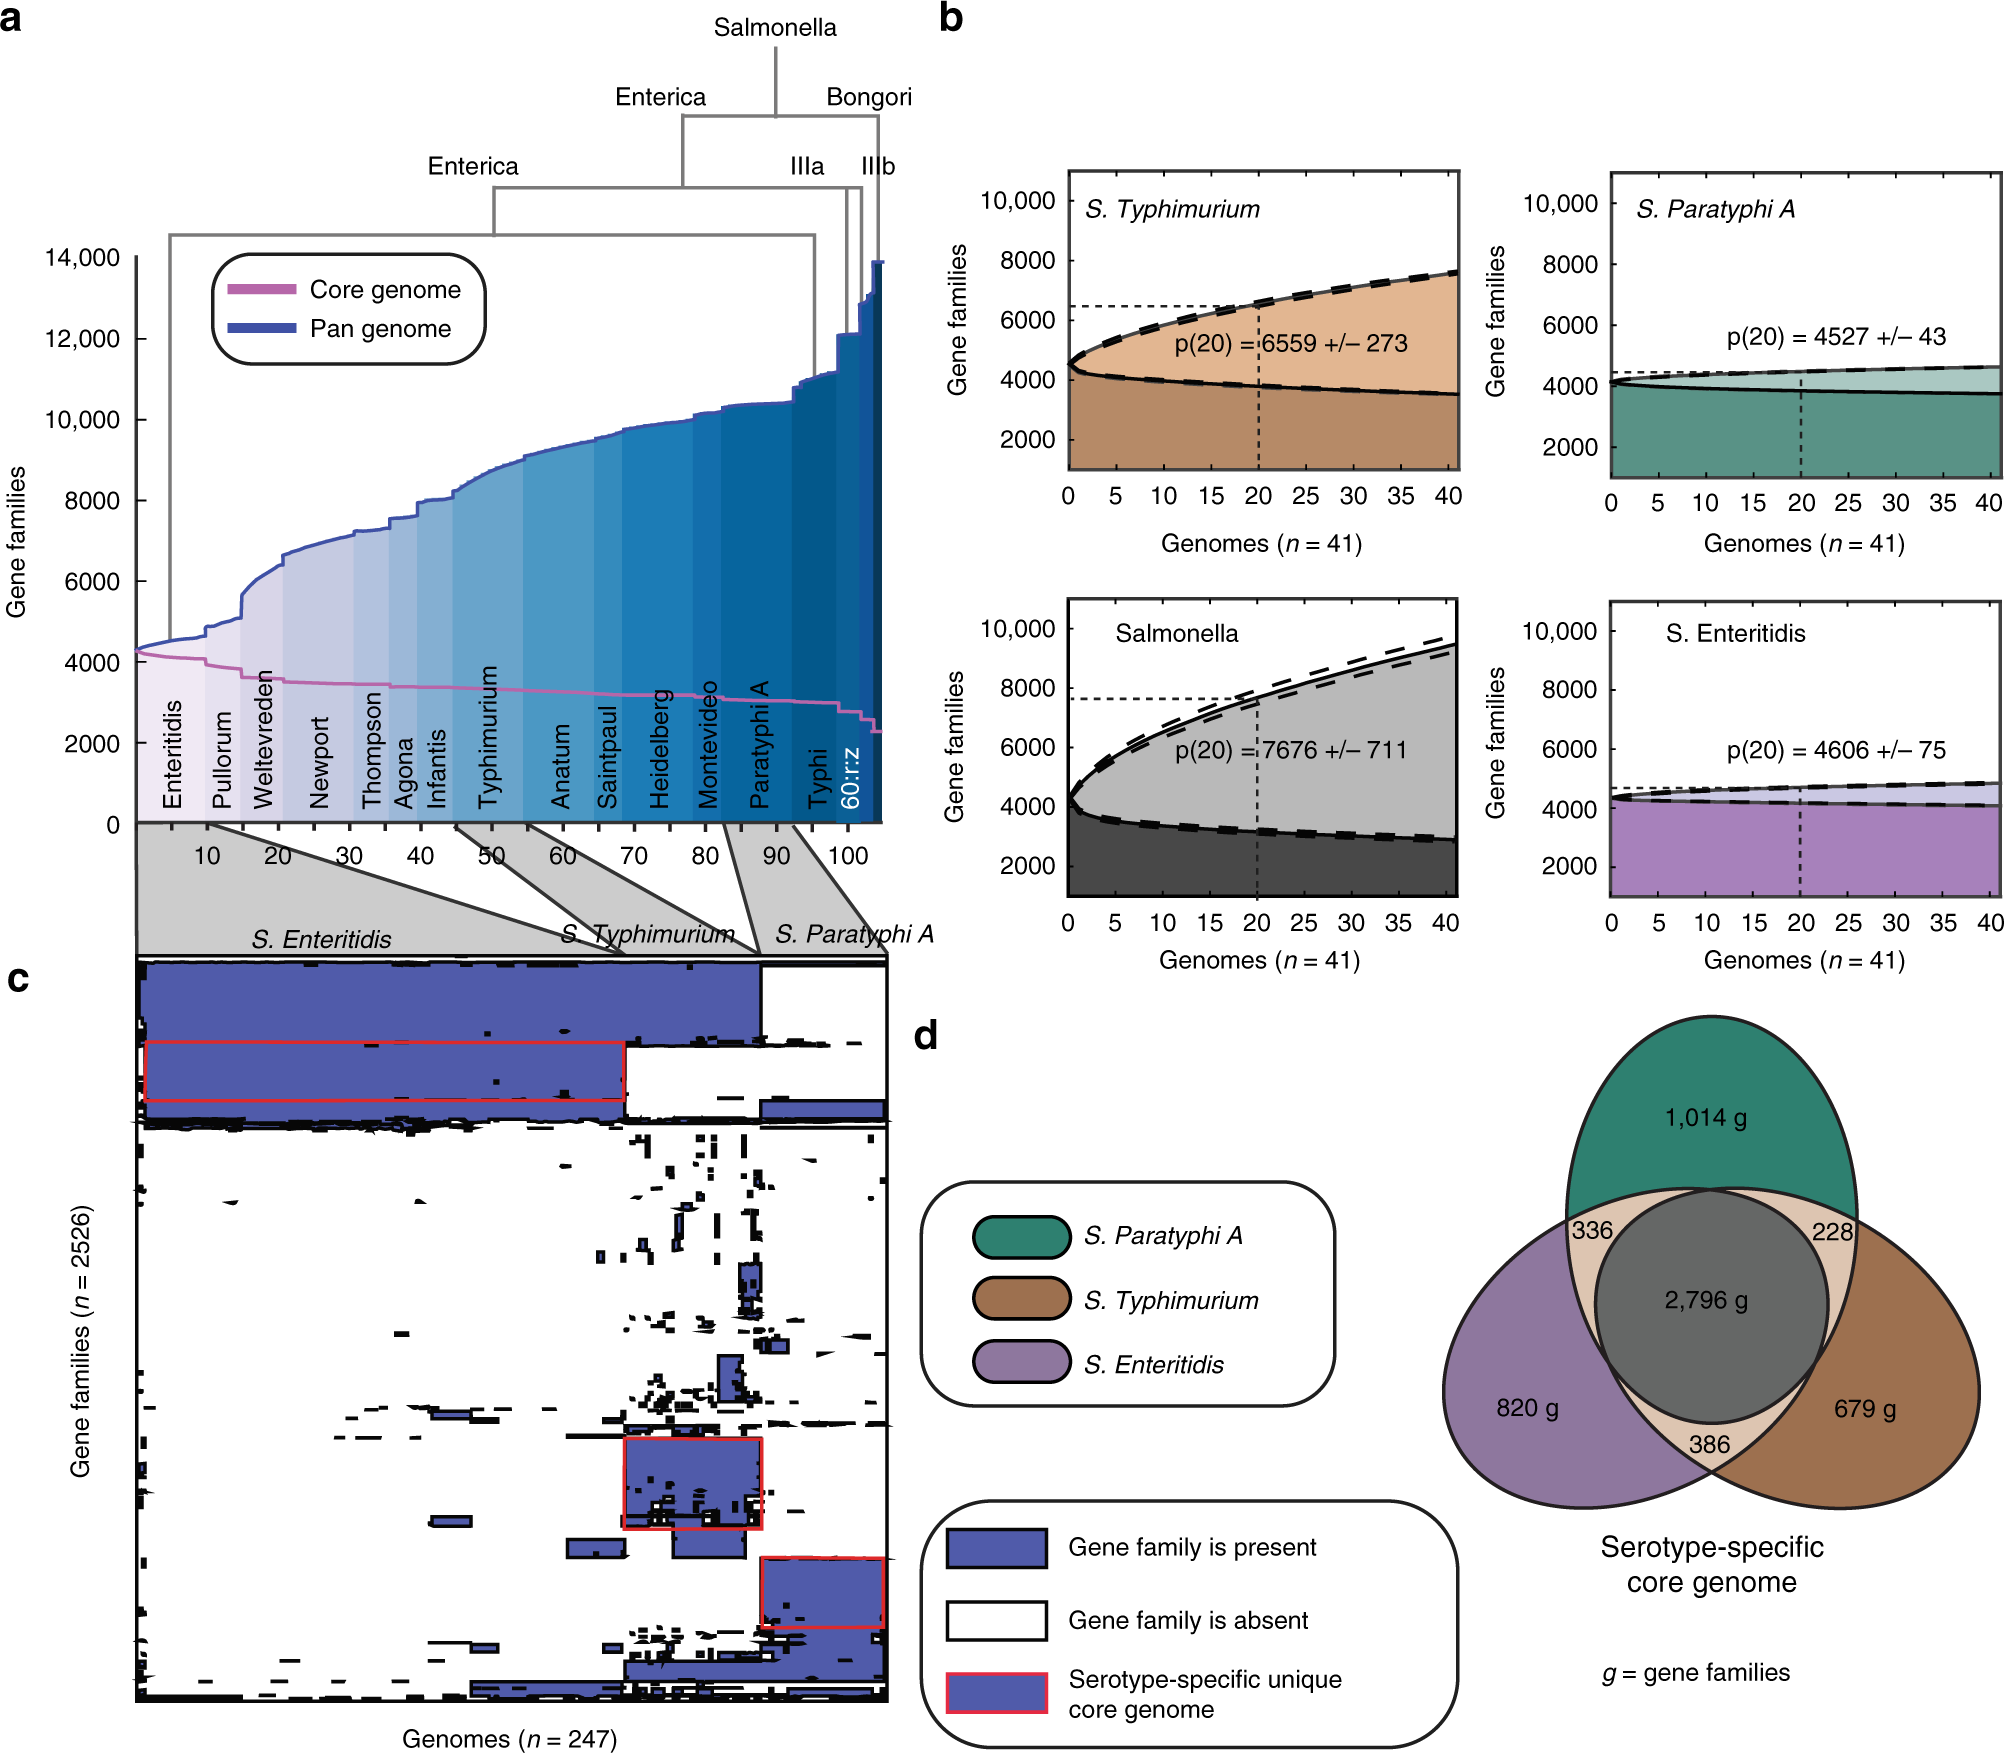 Genome-scale metabolic reconstructions of multiple